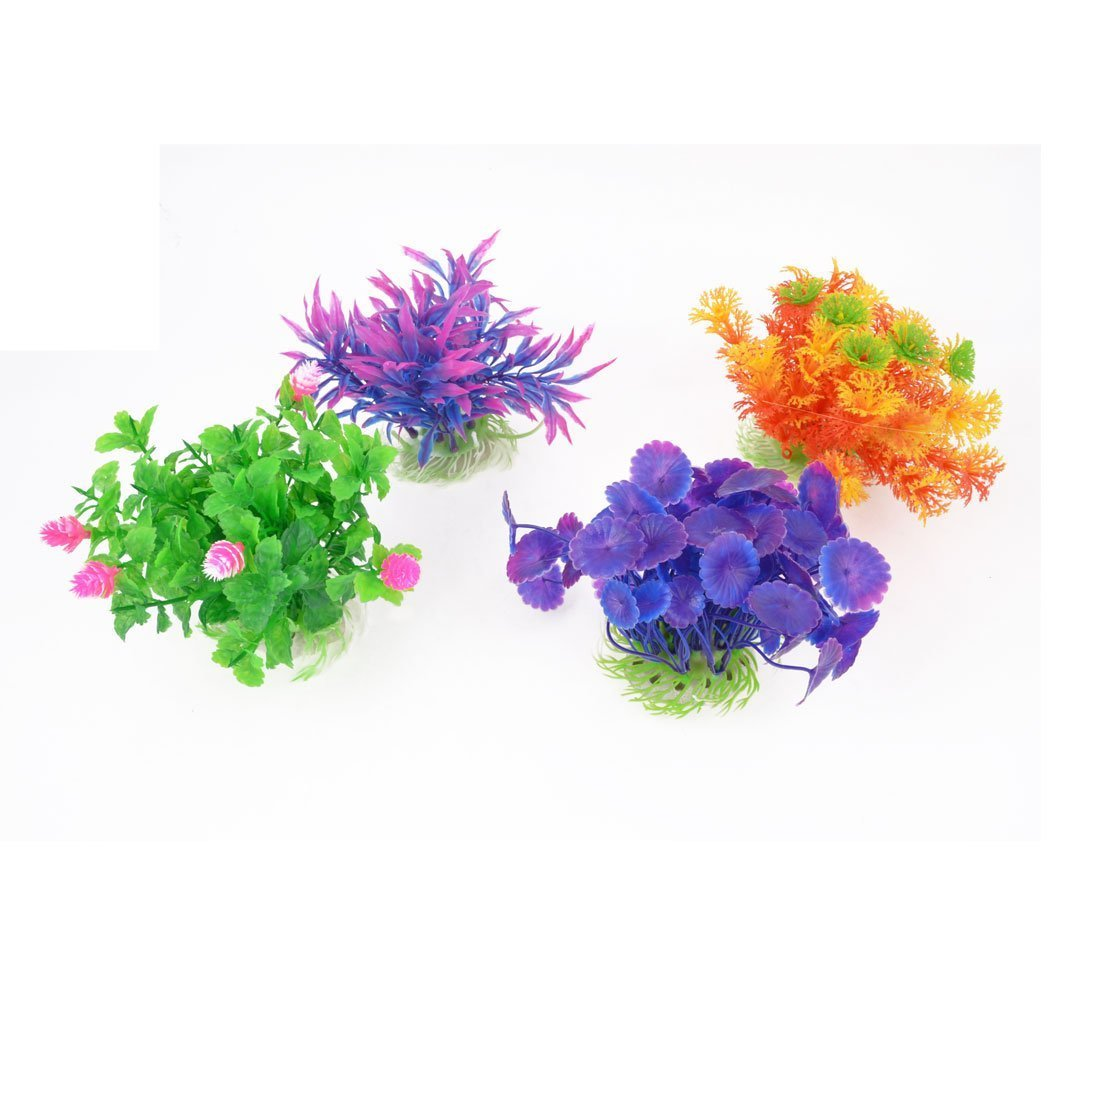 1Pc Plastic Home Aquarium Fish Tank Aquatic Plant Grass Lawn Ornament Multicolor